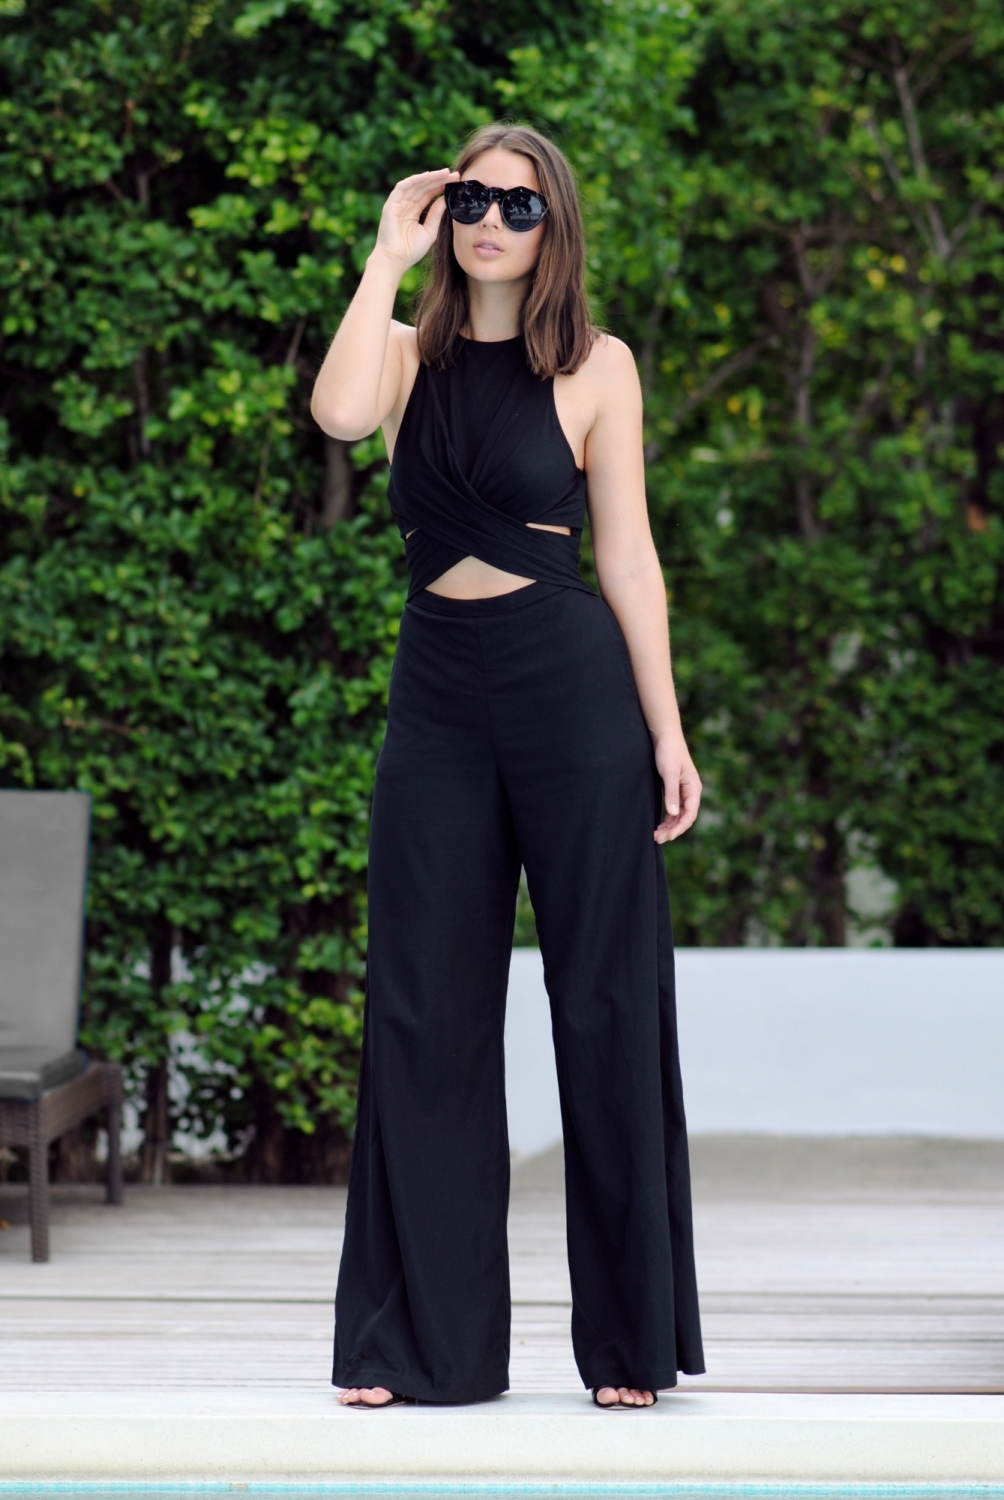 harper and harley_le specs_sunglasses_jumpsuit_thailand_travel_01